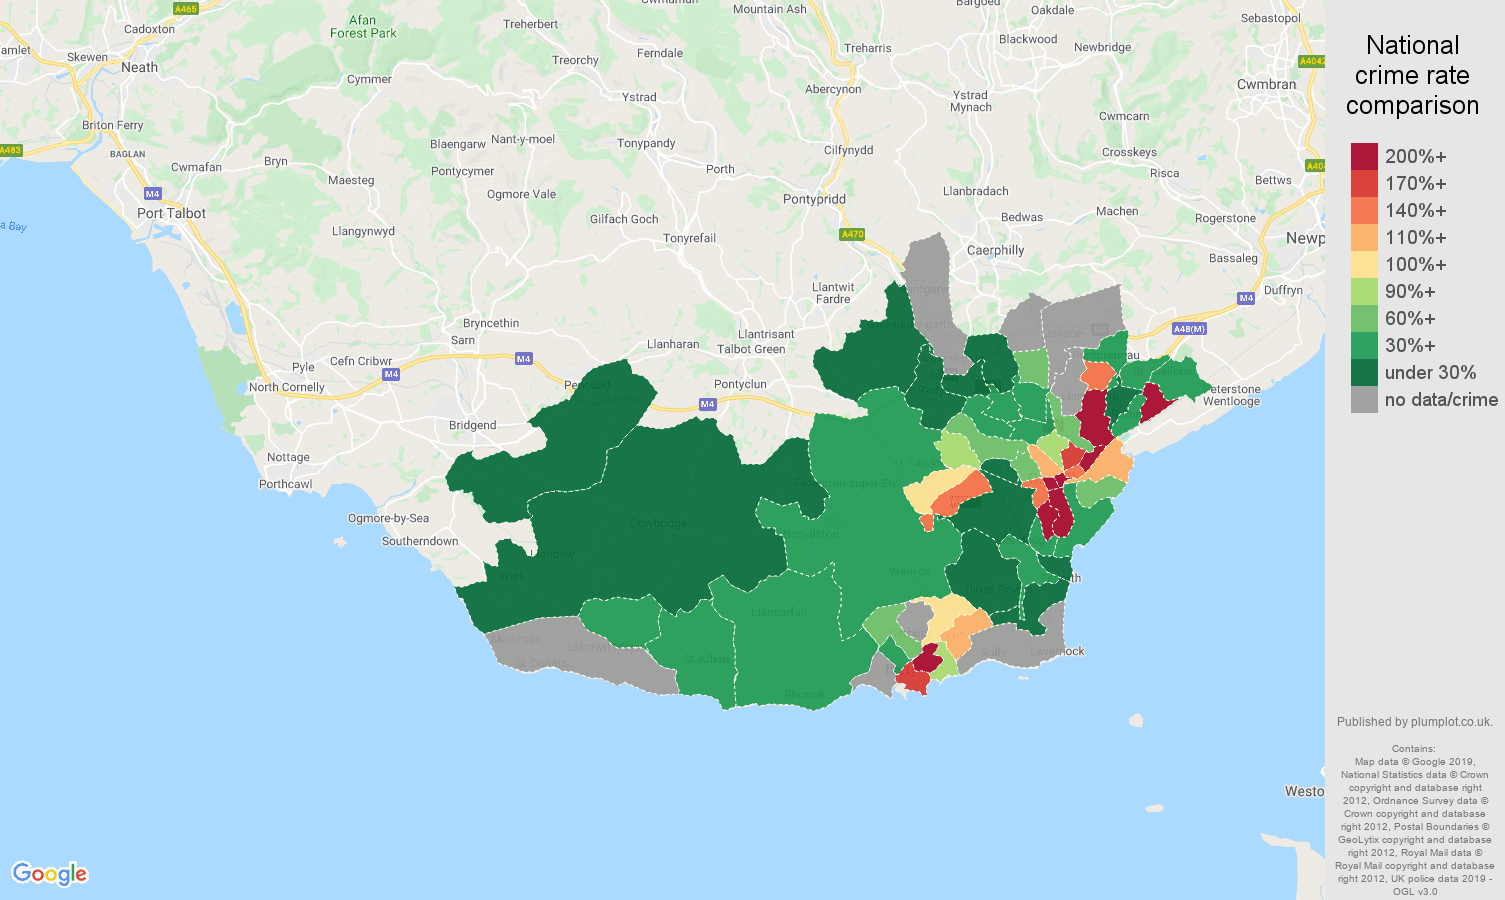 South Glamorgan possession of weapons crime rate comparison map